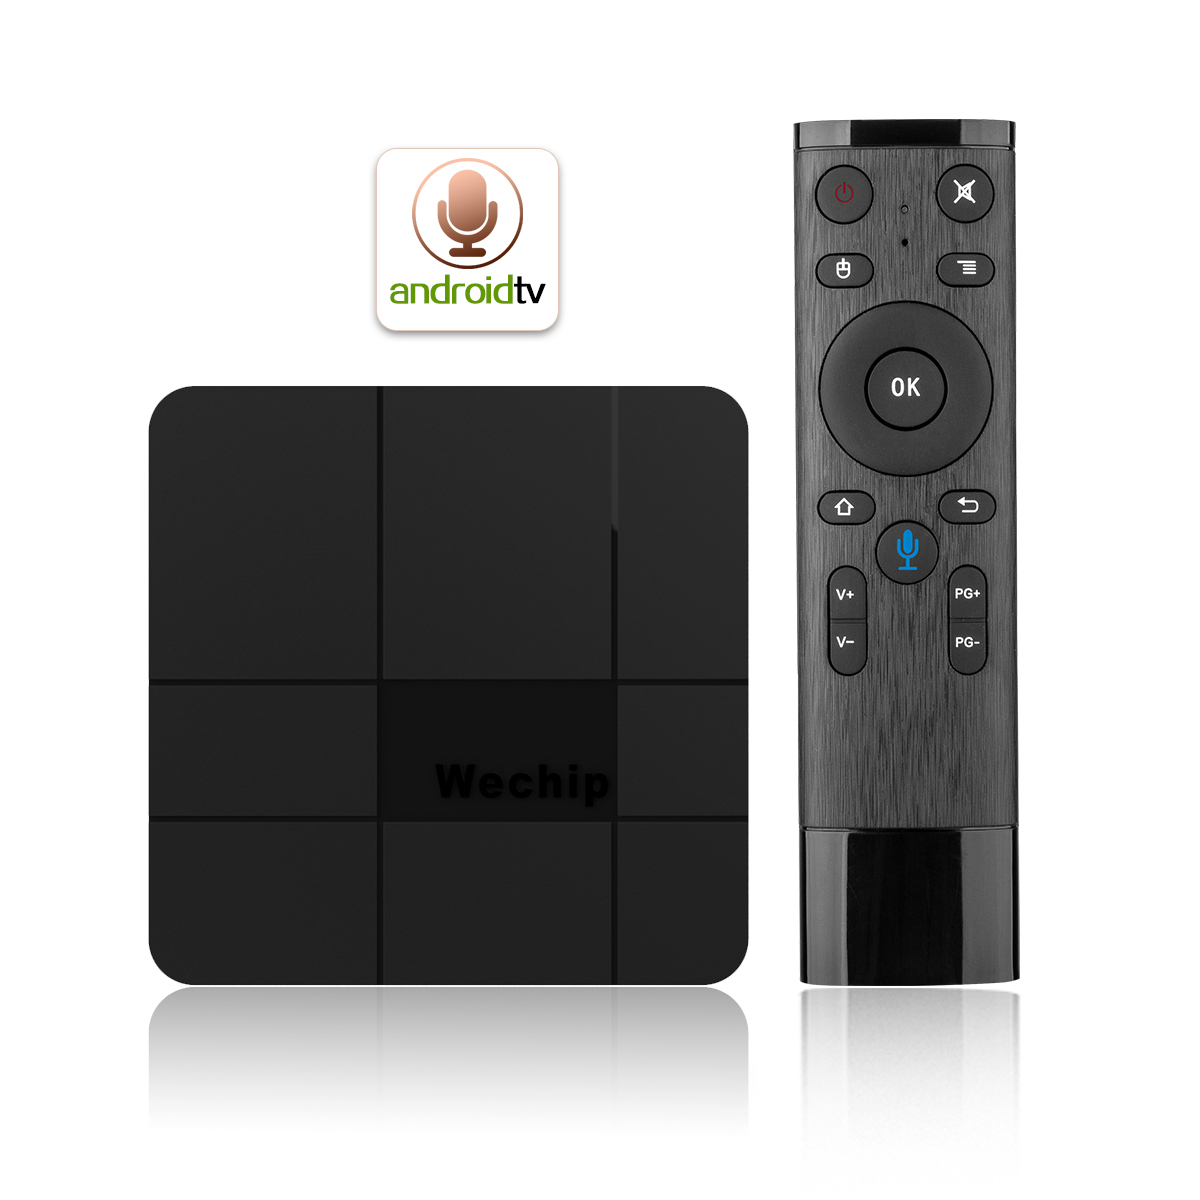 Set top box wechip v8 plus Android 7.1 smart TV box 2G 16G V8 voice control system android box tv